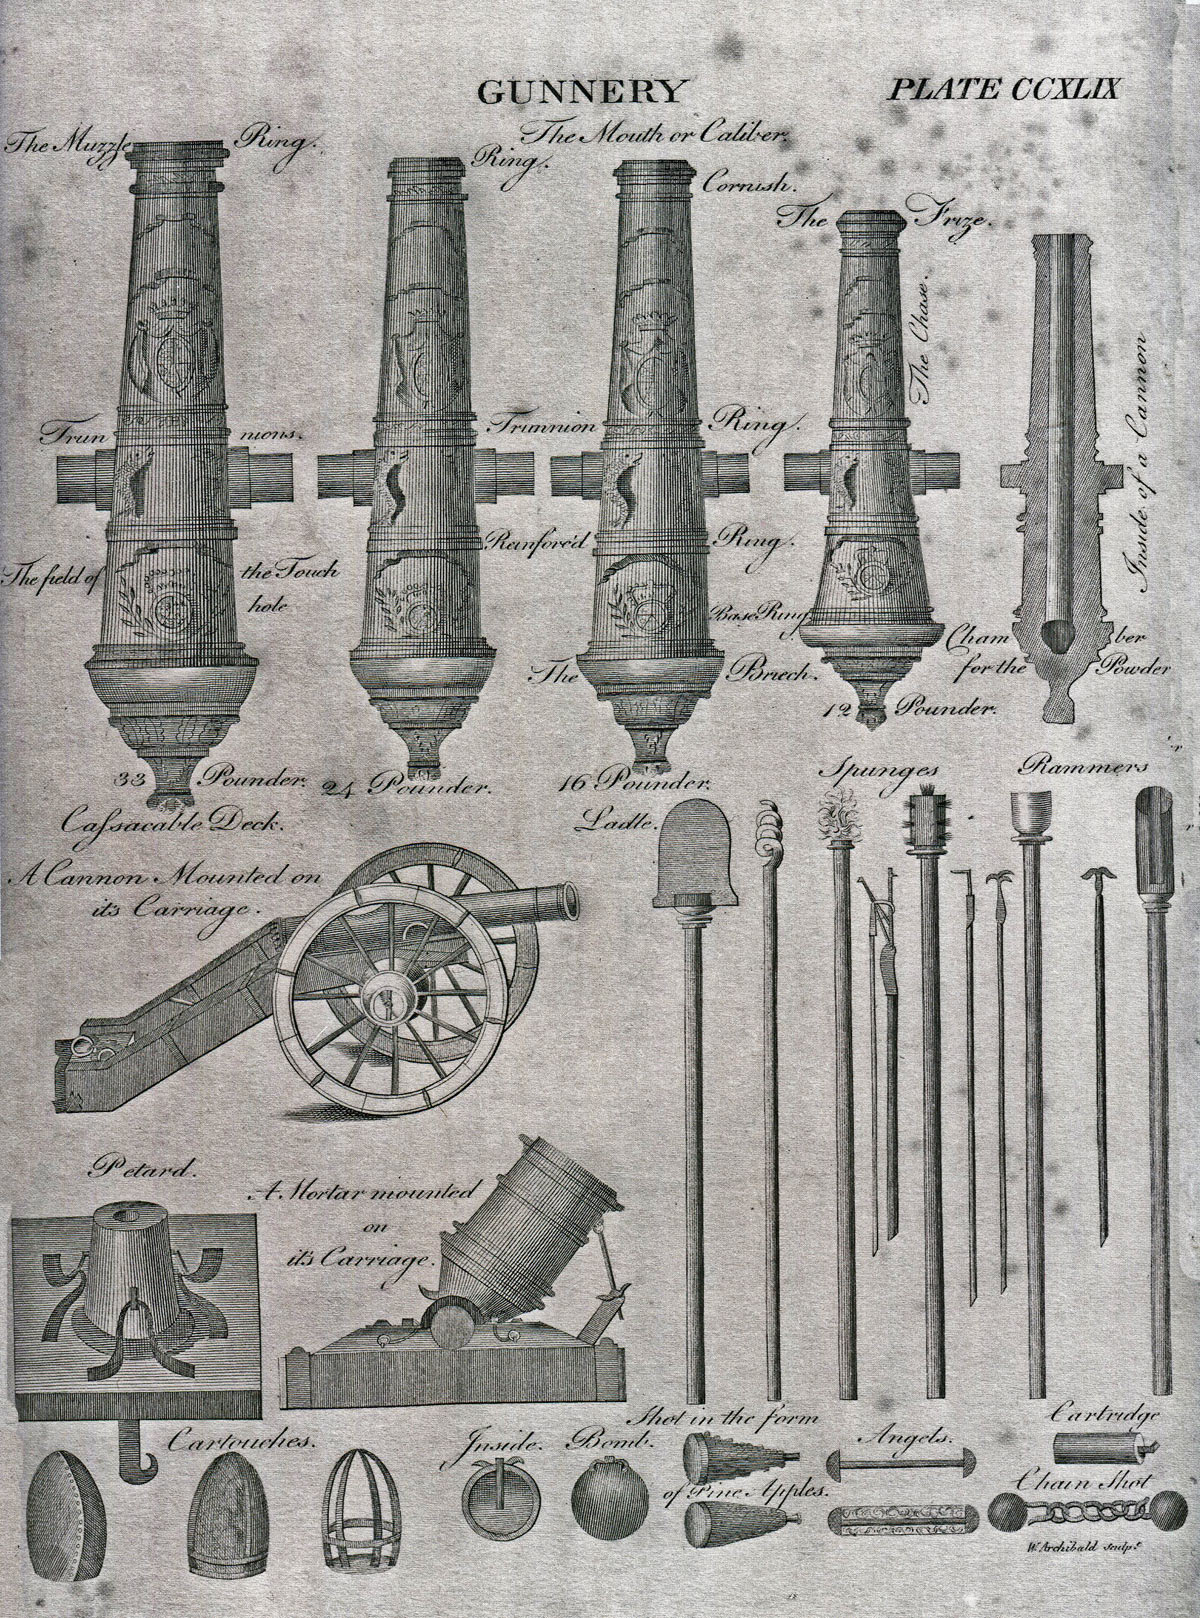 Chart showing the sizes of gun and types of ammunition: the Great Siege of Gibraltar from 1779 to 1783 during the American Revolutionary War